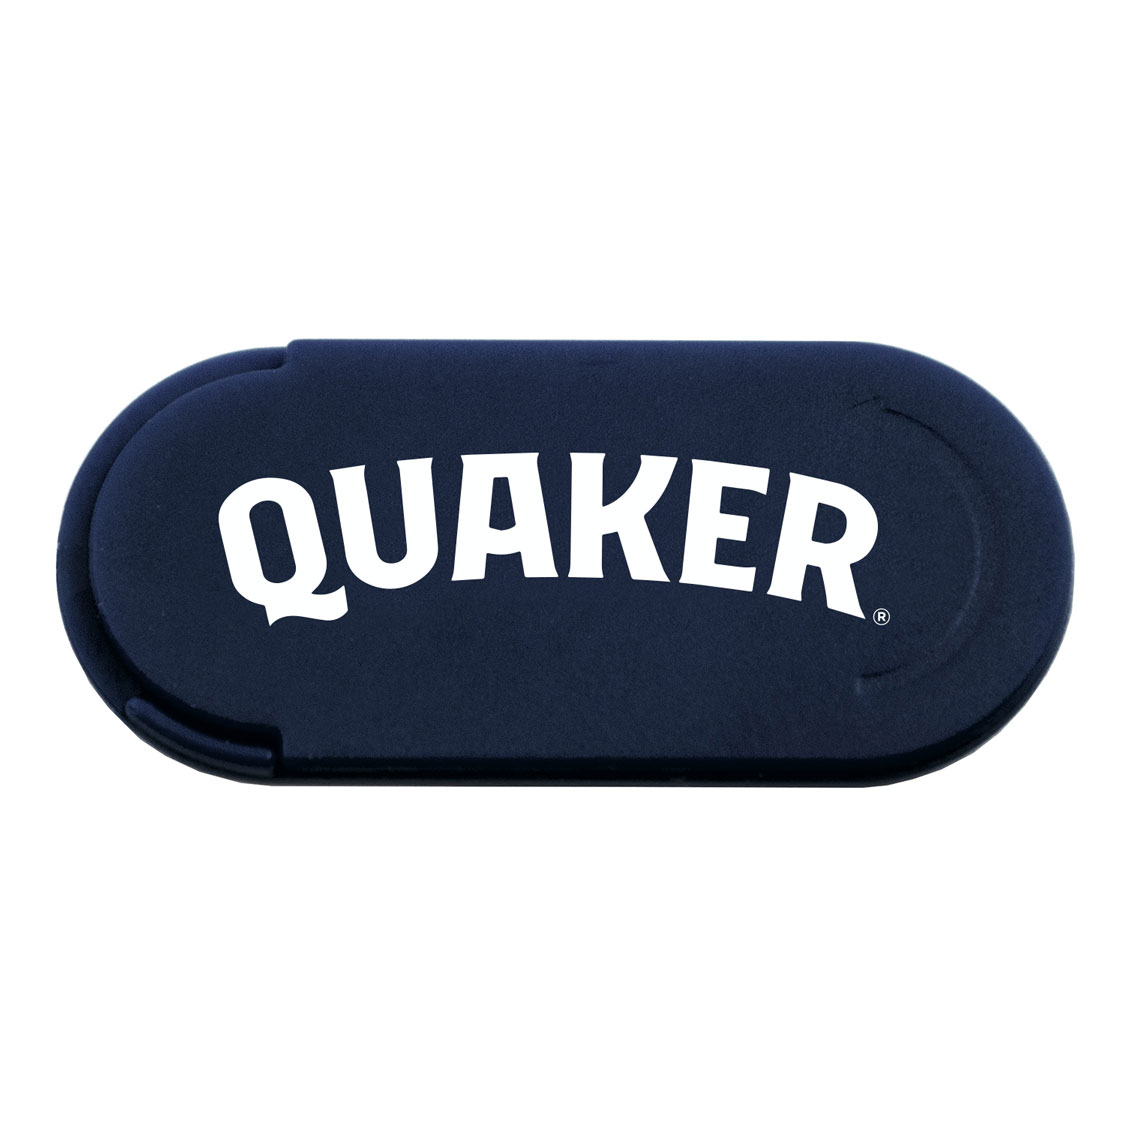 Quaker Webcam Cover